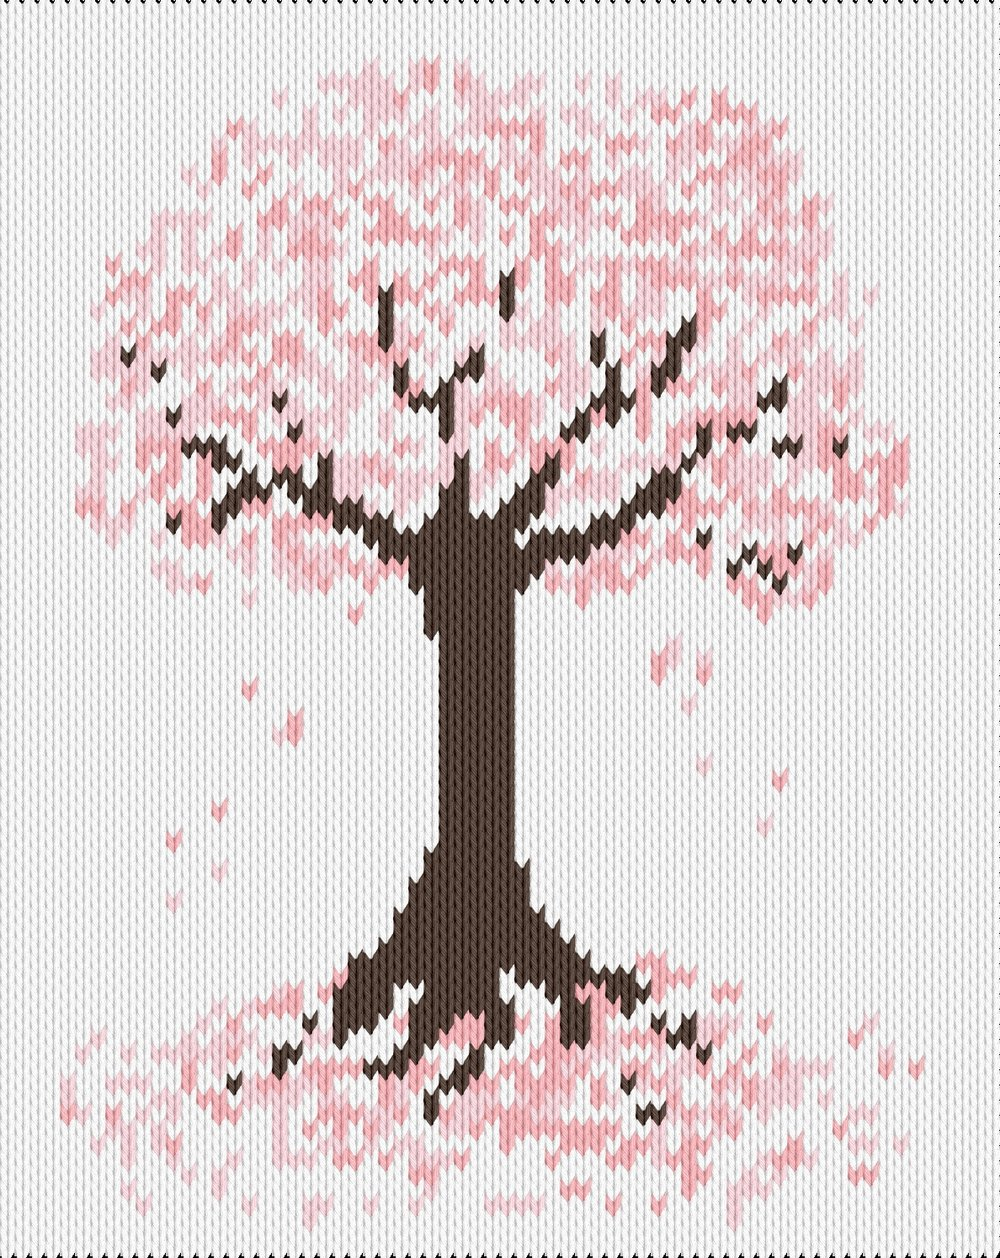 Knitting motif chart, sakura tree